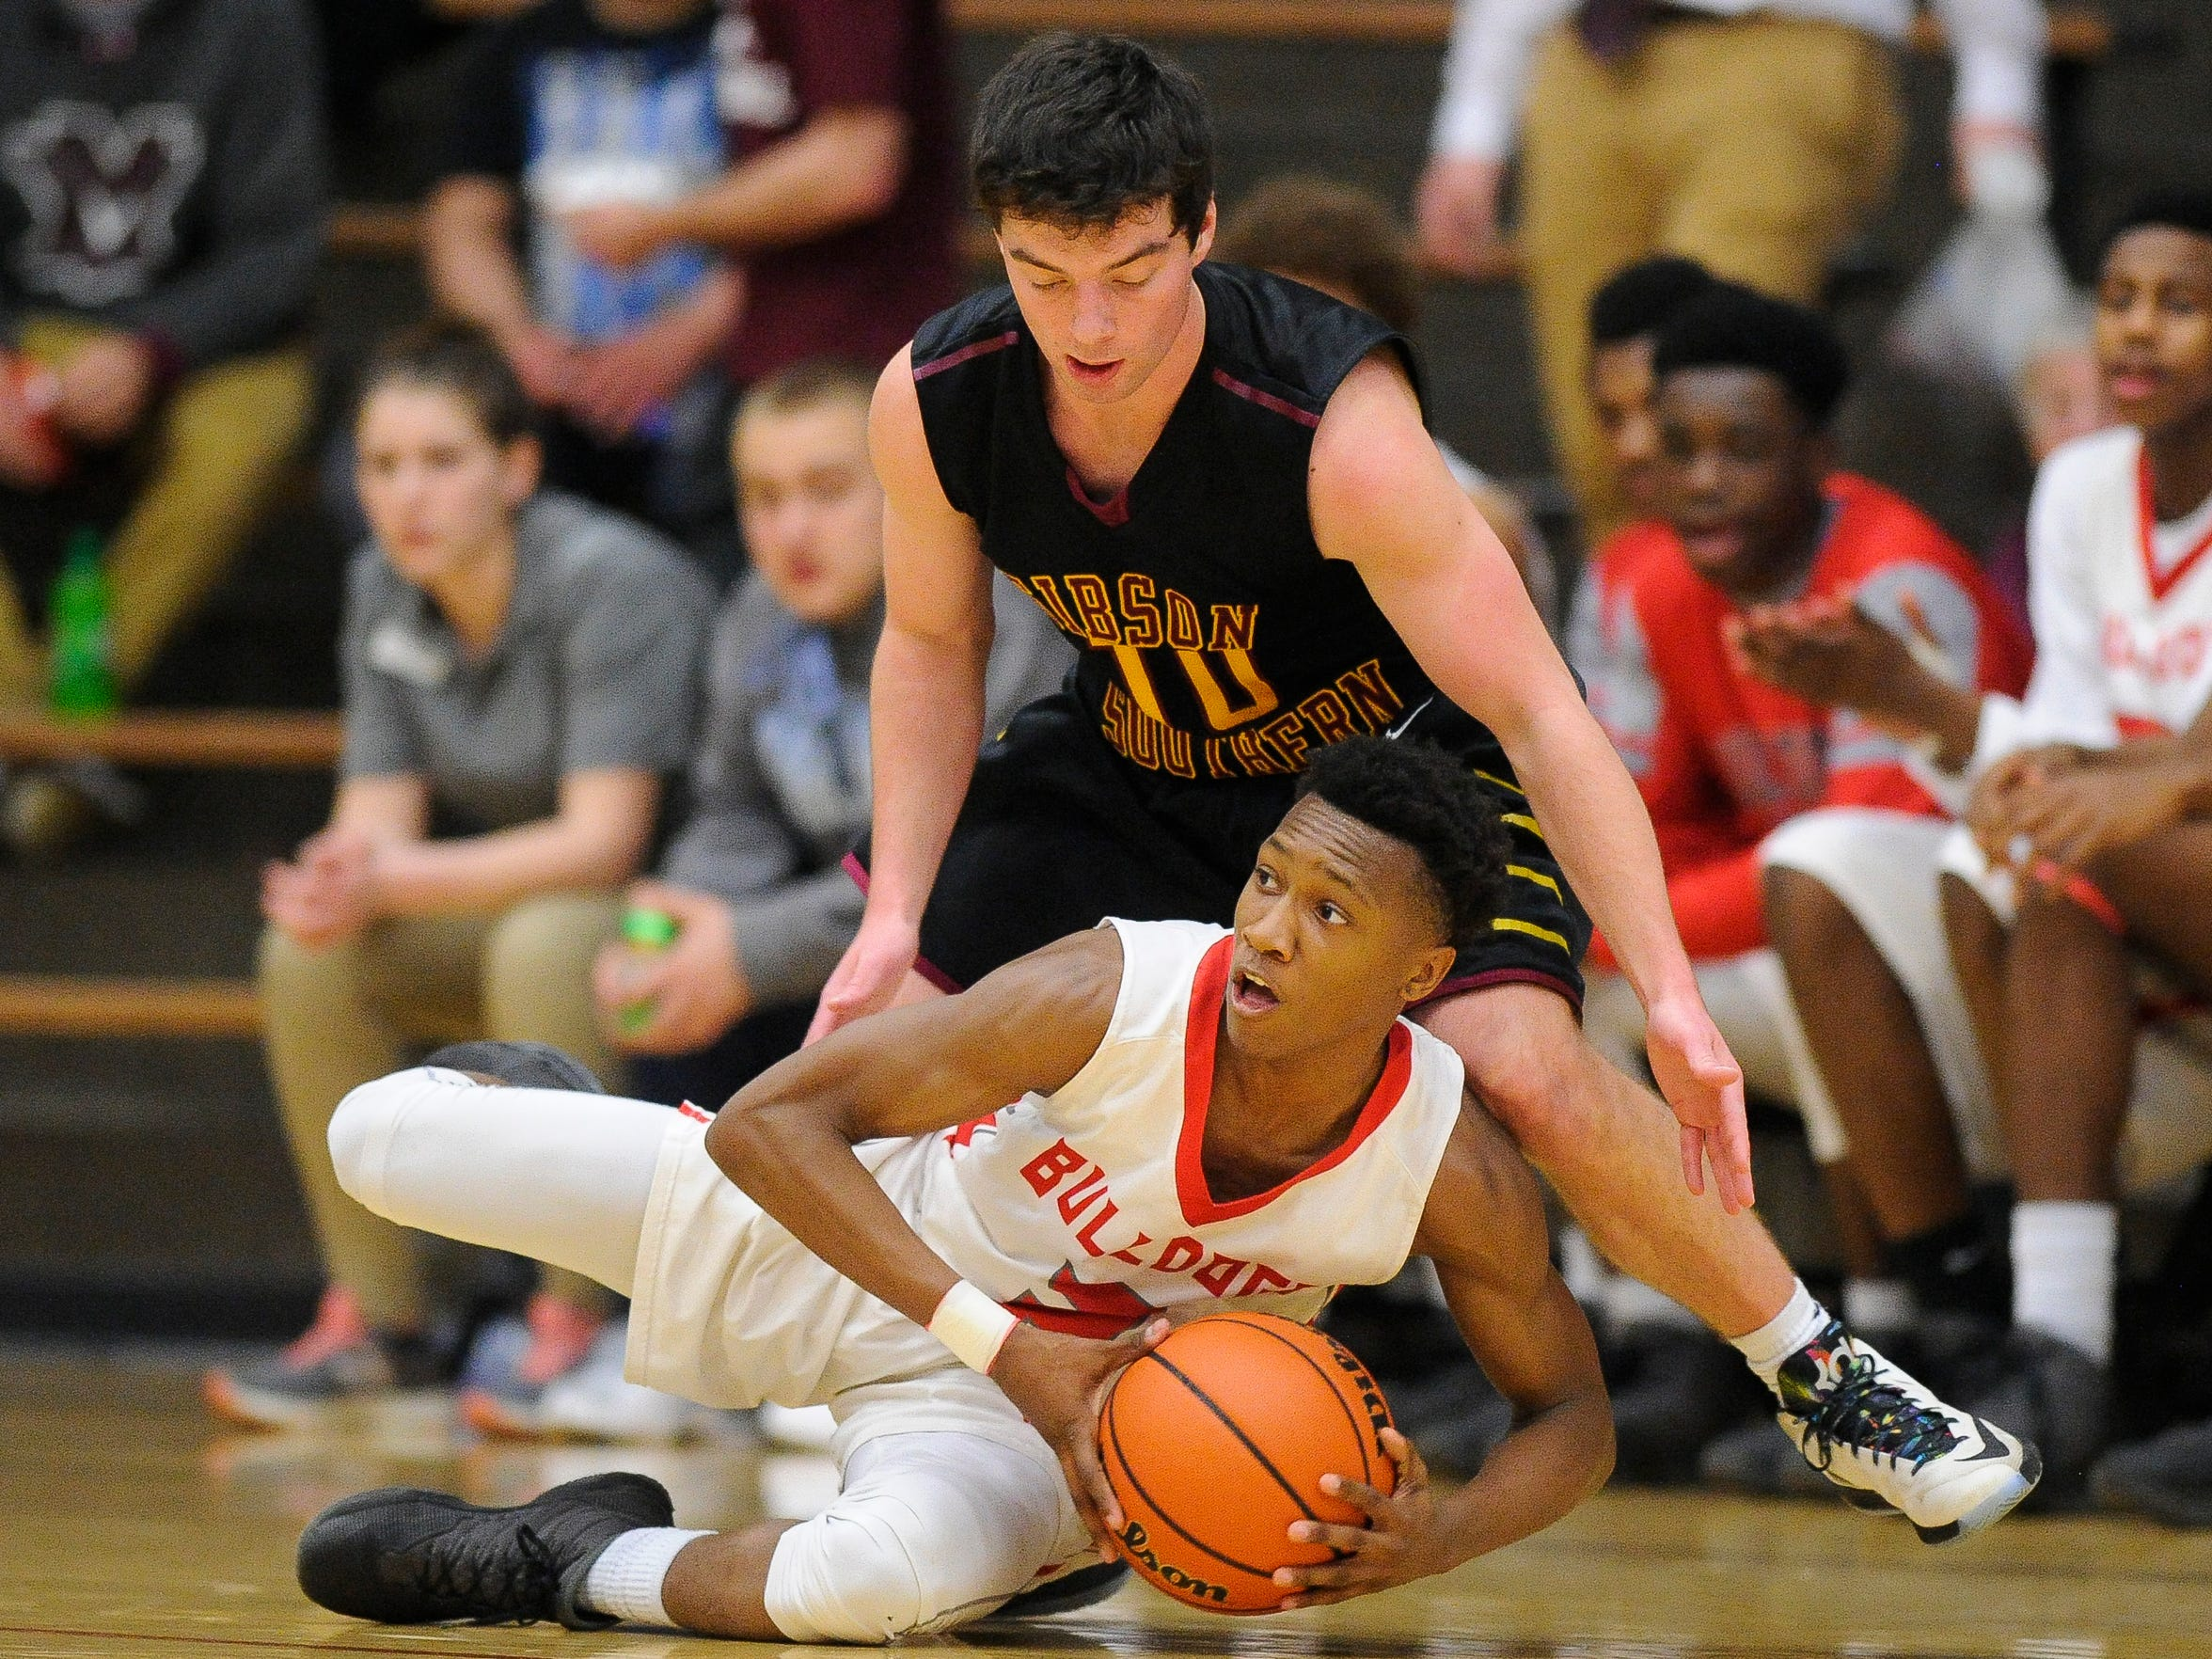 Bosse's Mekhi Lairy (2) steals the ball from Gibson Southern's Chandler McKee (10) during the Class 3A Boonville sectional quarterfinals at Boonville High School, Tuesday, Feb. 28, 2017. Bosse beat Gibson Southern 78-54.